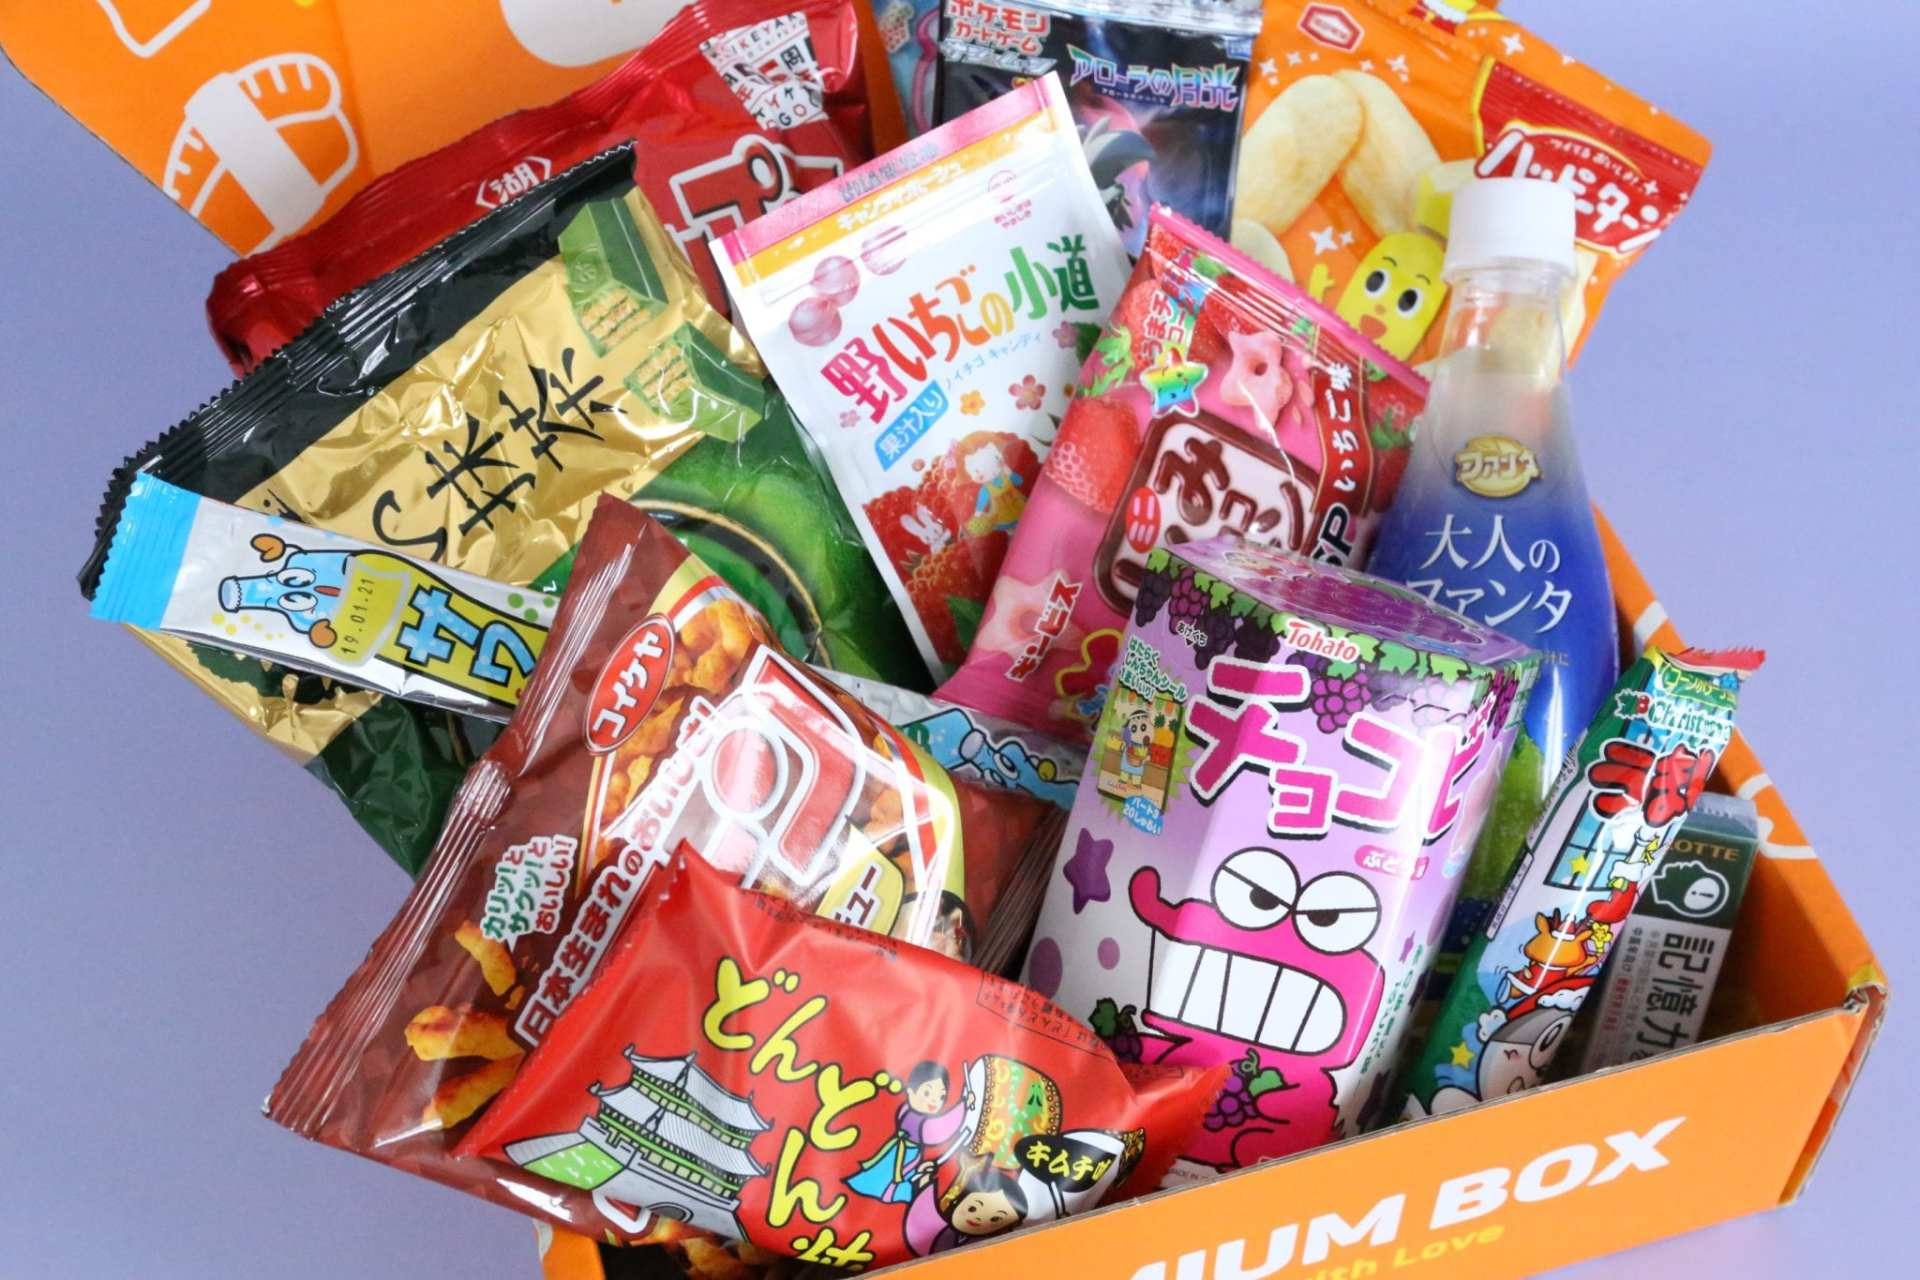 Tokyotreat Is A Subscription Based Service That Delivers The Most Premium Japanese Snacks And Candies To Your Door Monthly From Salty To Sour To Sweet